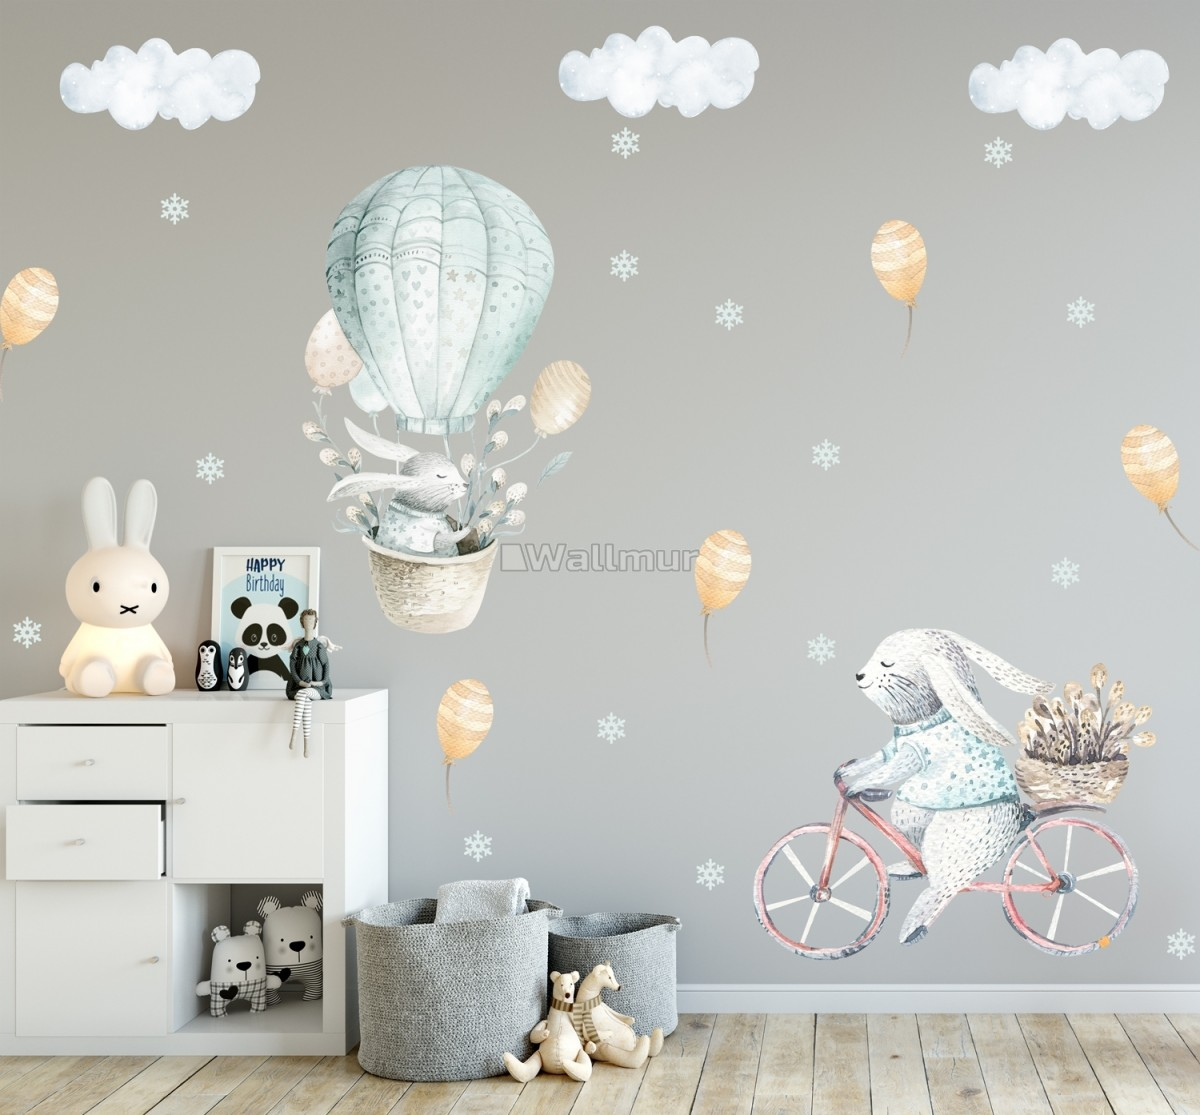 Kids Cartoon Rabbit with Balloons and Snowflake Wall Decal Sticker